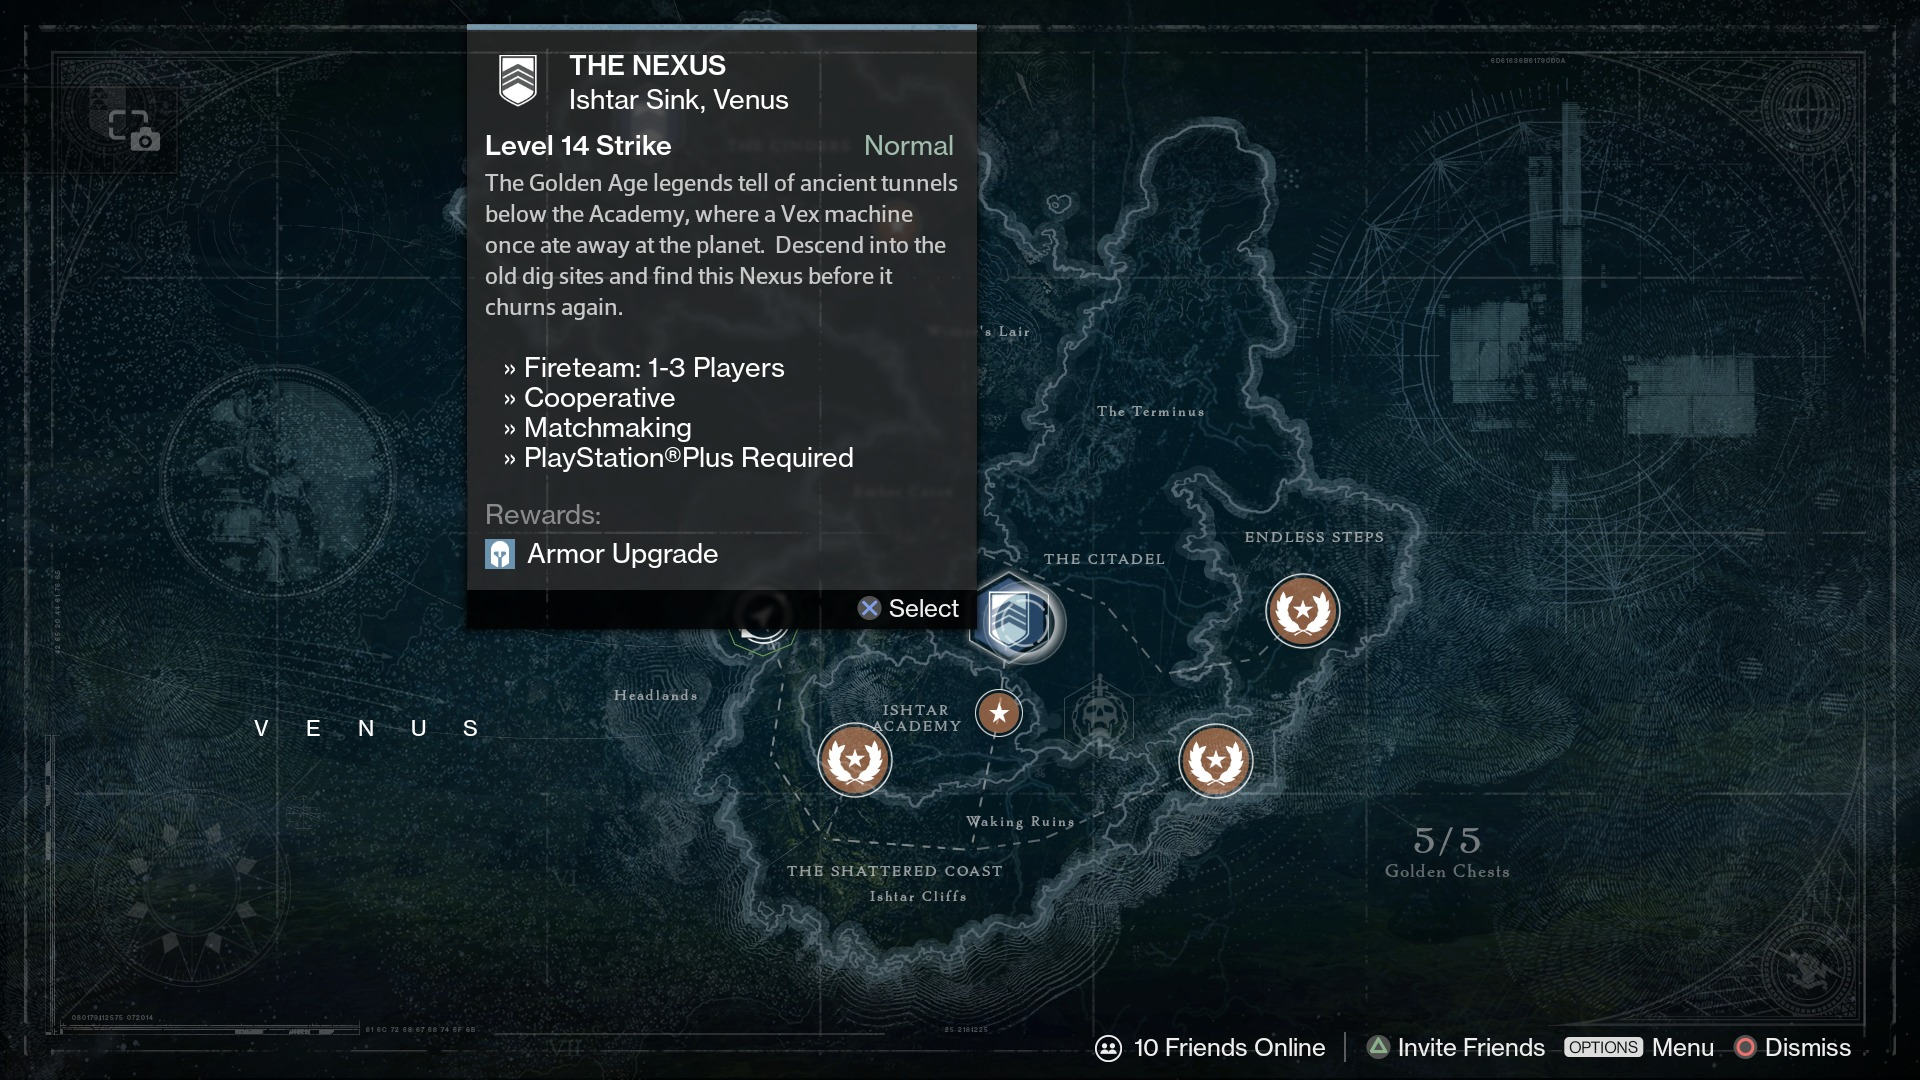 215 1080 in venus dead ghost locations guide previous next